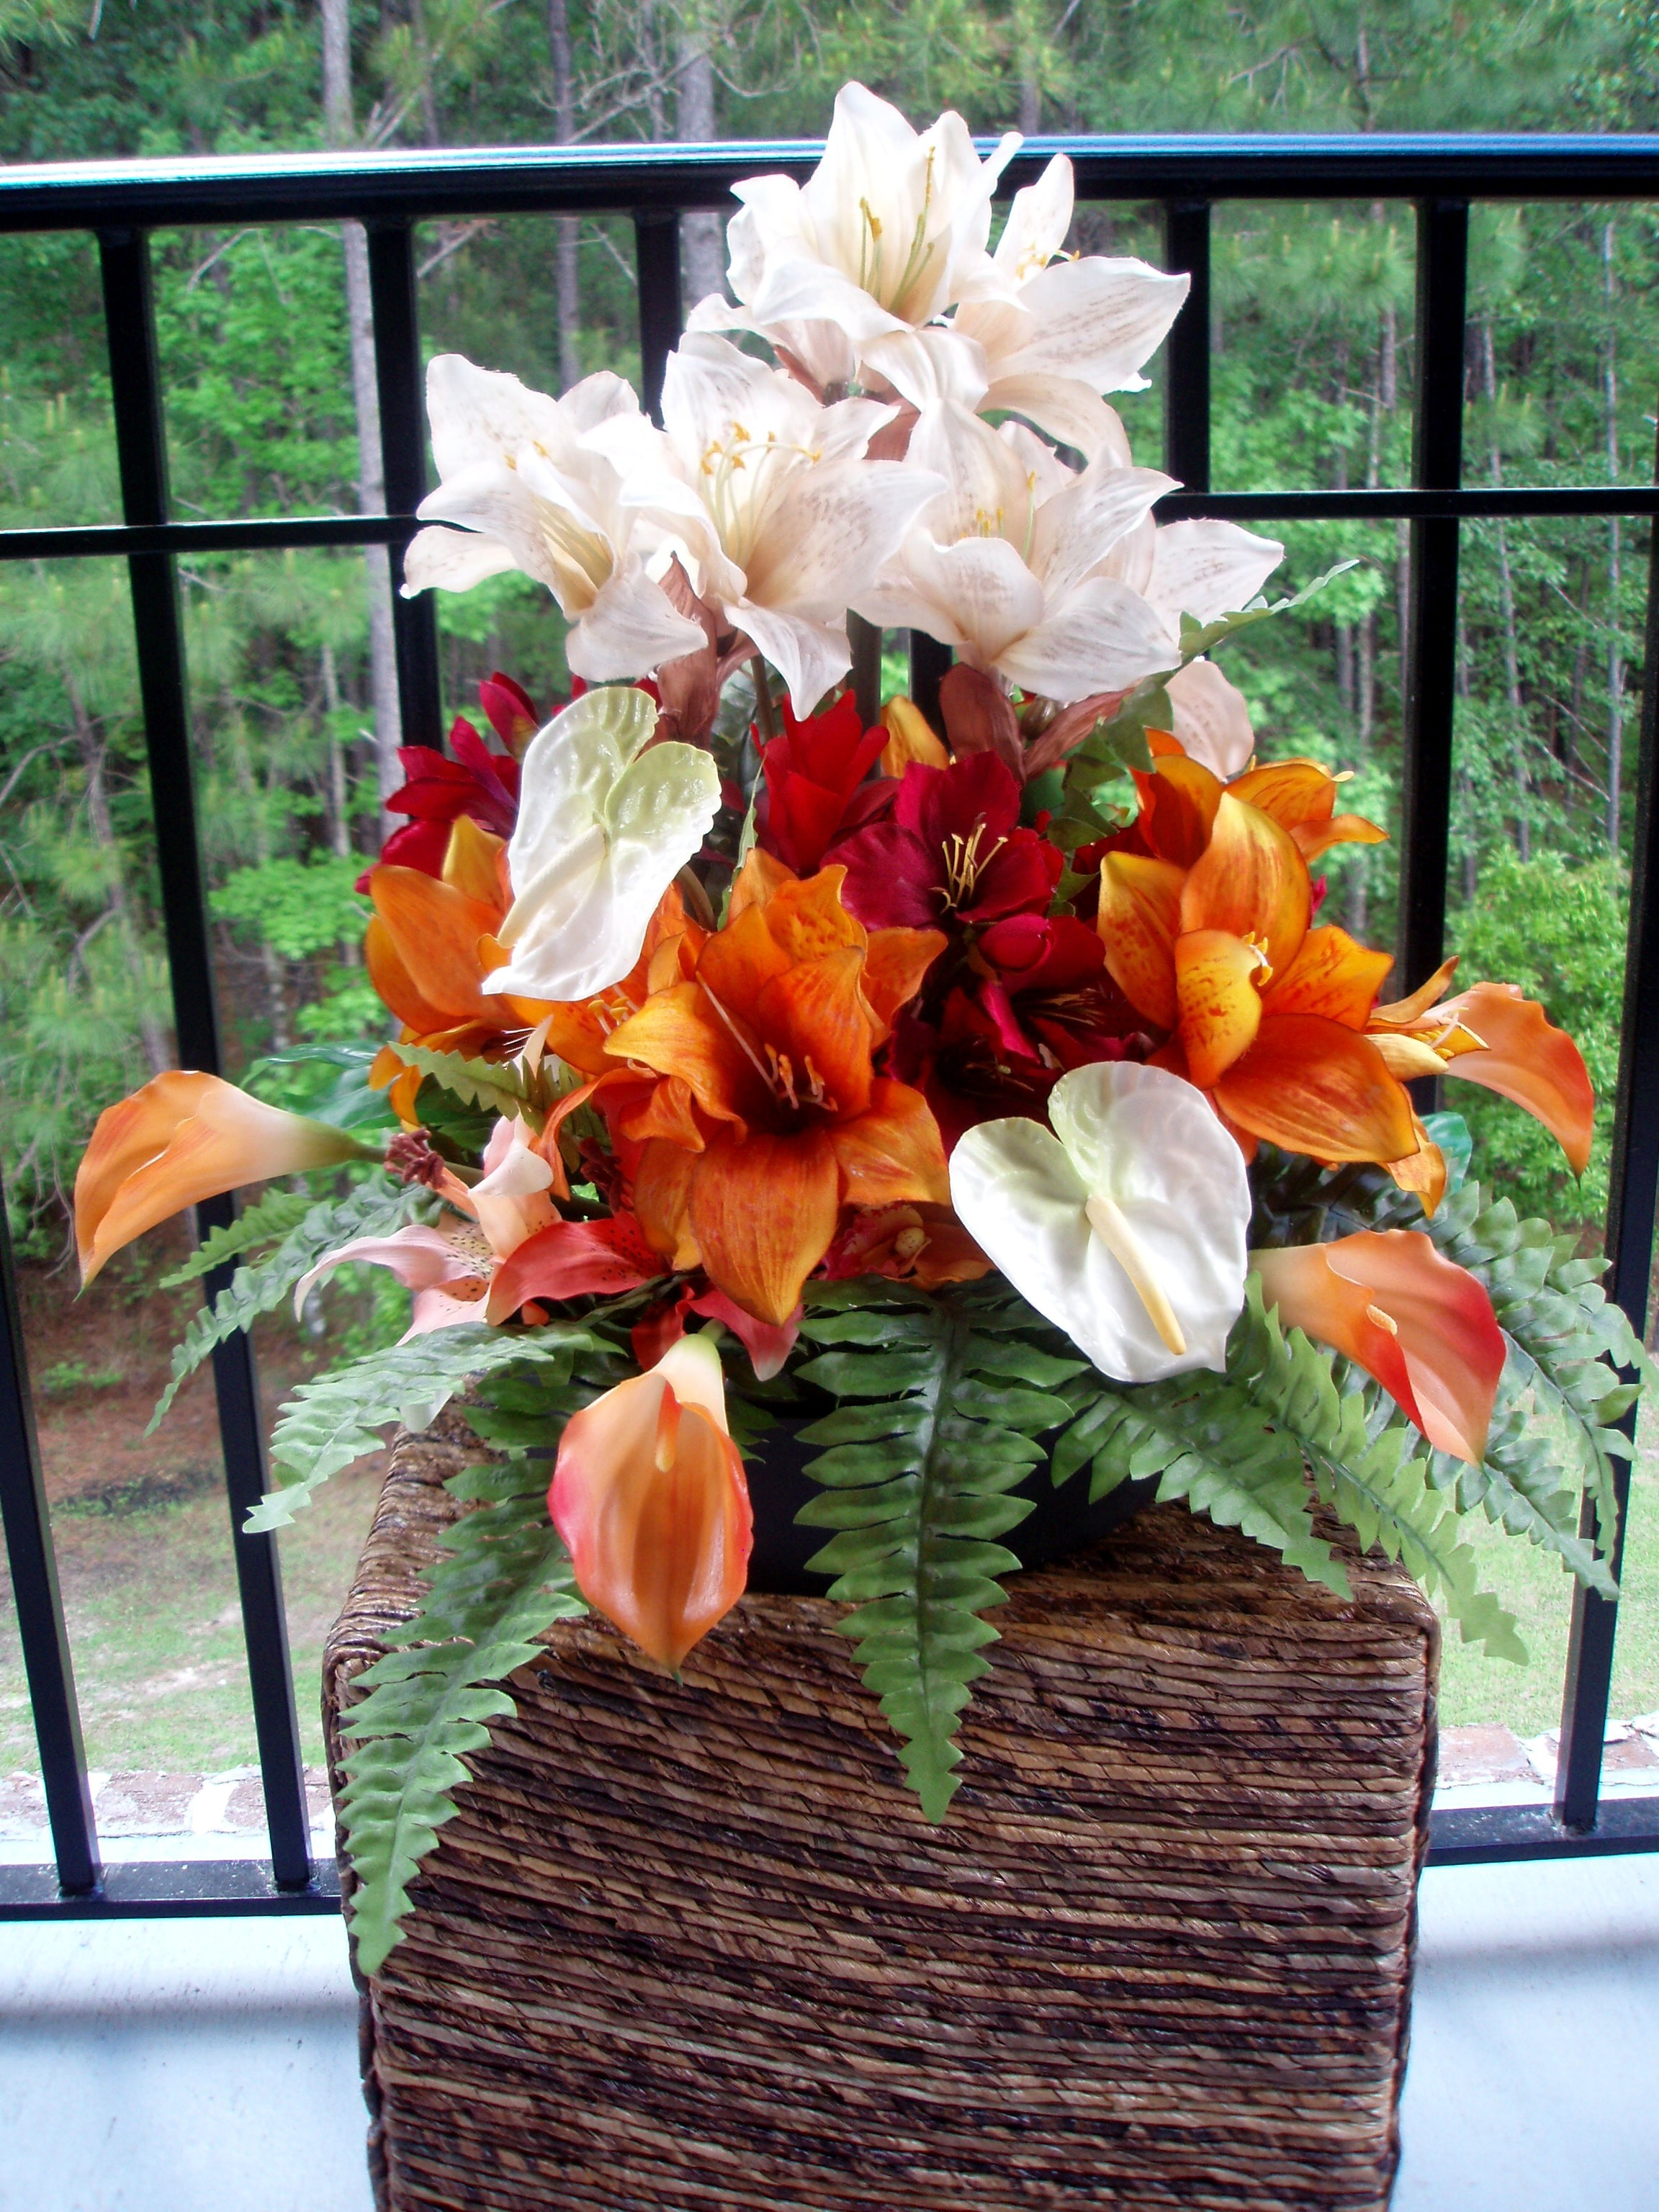 Ceremony, Inspiration, Reception, Flowers & Decor, ivory, orange, gold, Ceremony Flowers, Centerpieces, Flowers, Centerpiece, Wedding, Tropical, Board, Amaryllis, Savannah event decor